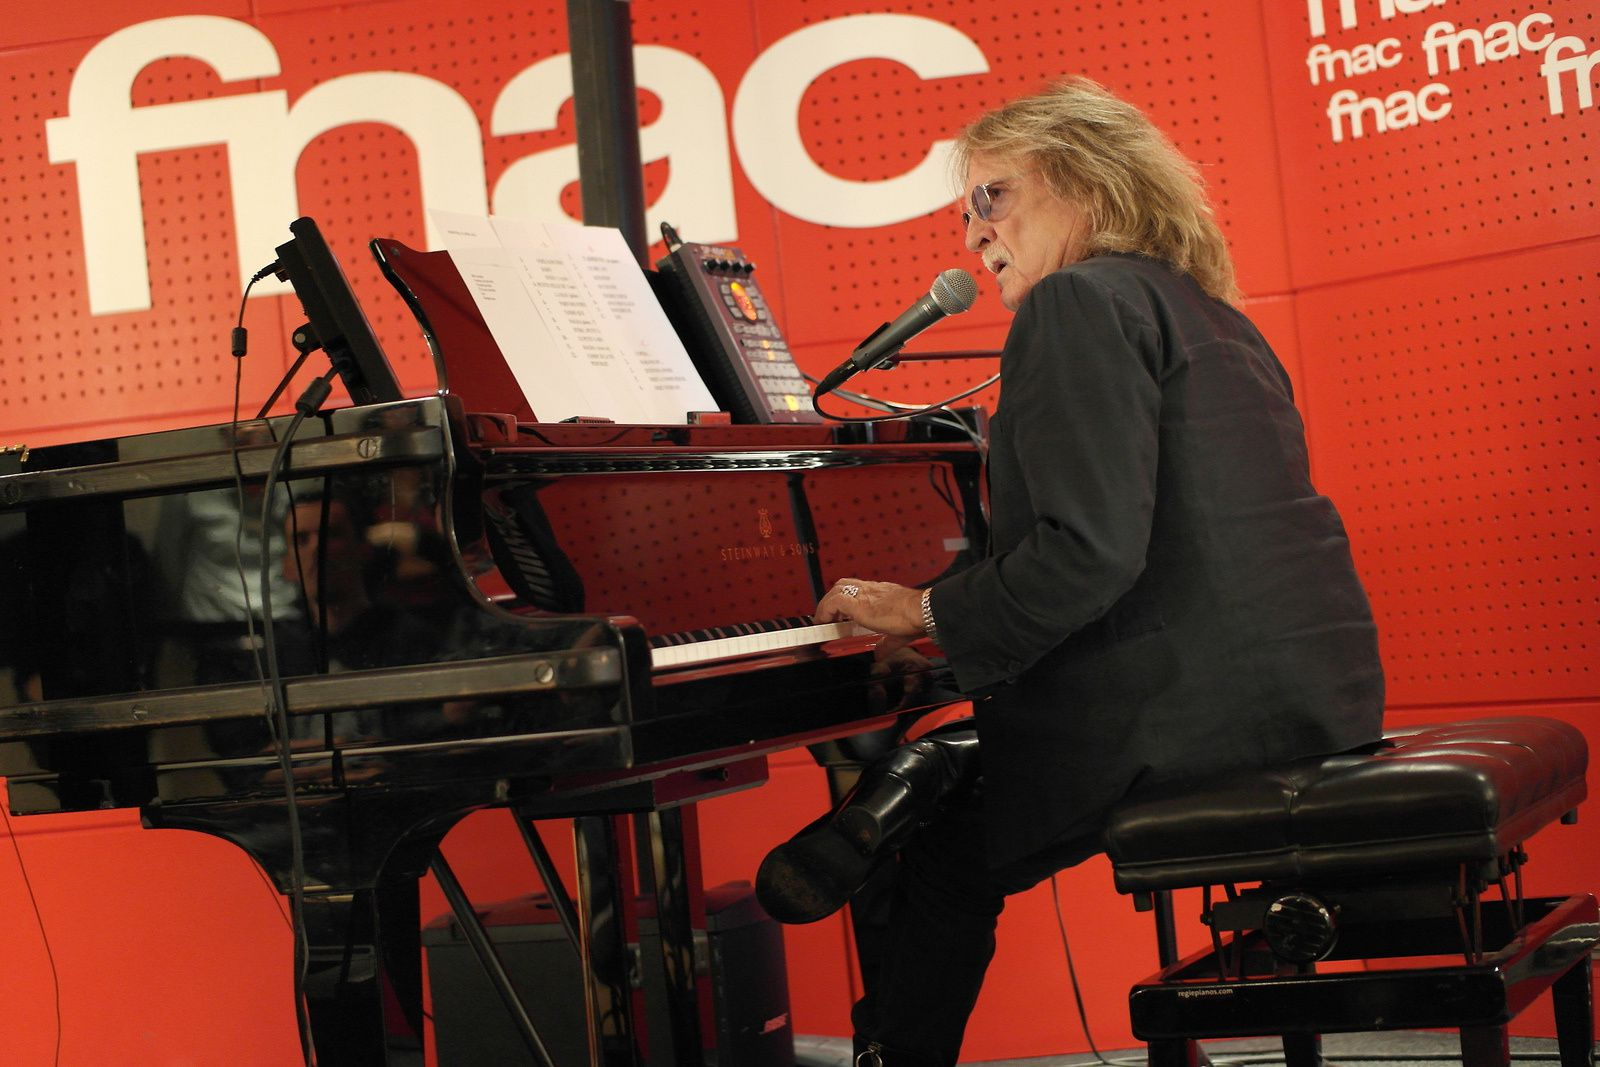 CHRISTOPHE en showcase à la Fnac Saint Lazare (15/04/2016)